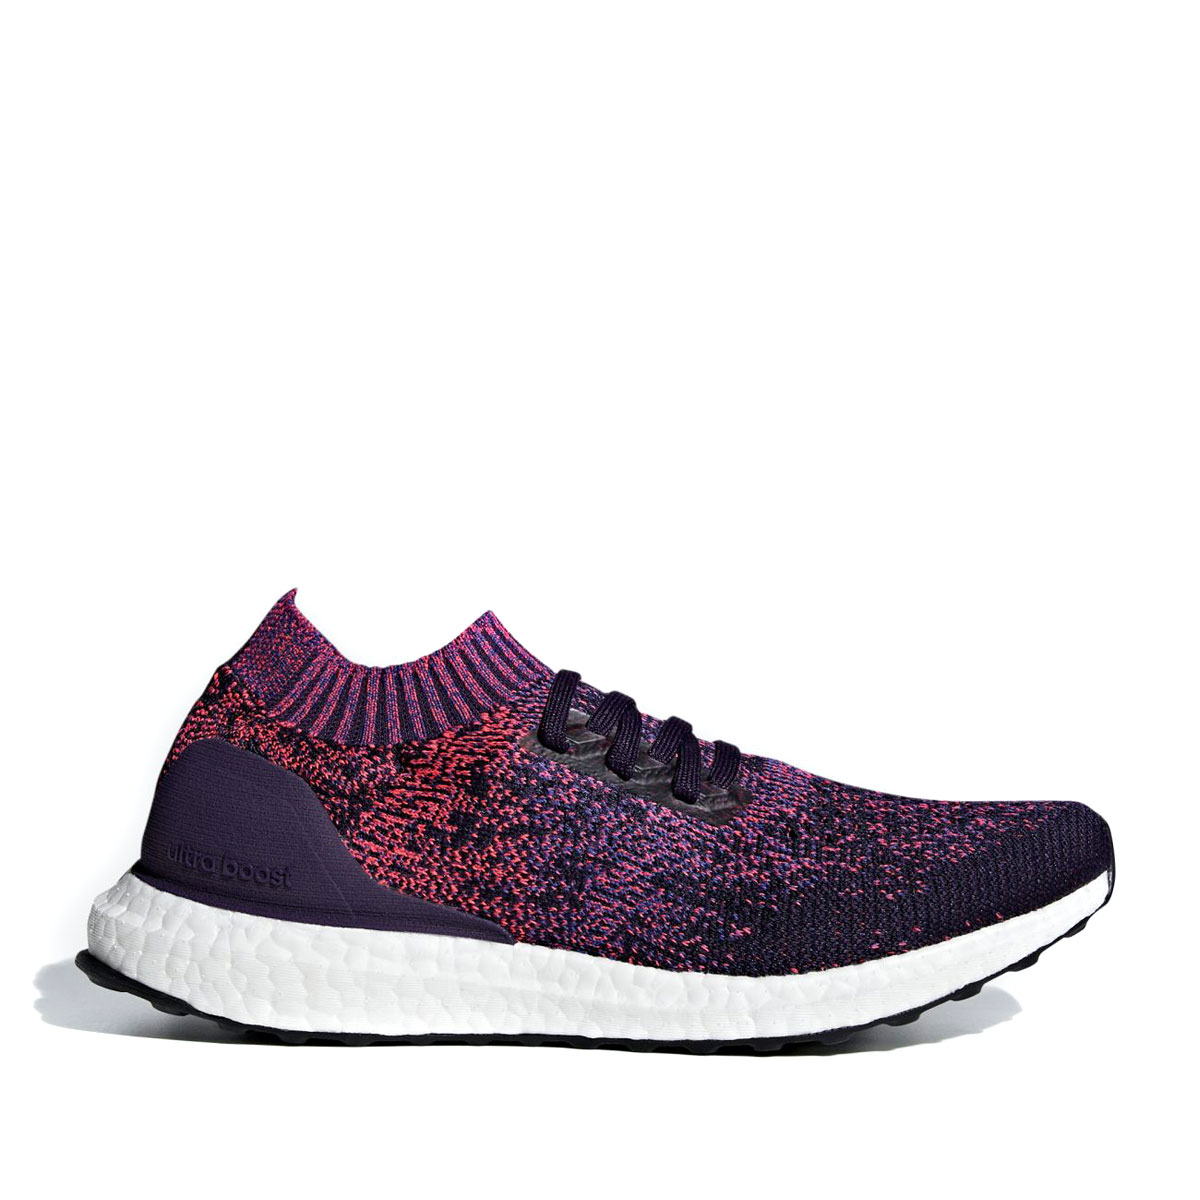 pretty nice 2eec4 b6e63 adidas UltraBOOST Uncaged (LEGEND PURPLE ACTIVE BLUE SHOCK RED) (Adidas  ultra ...